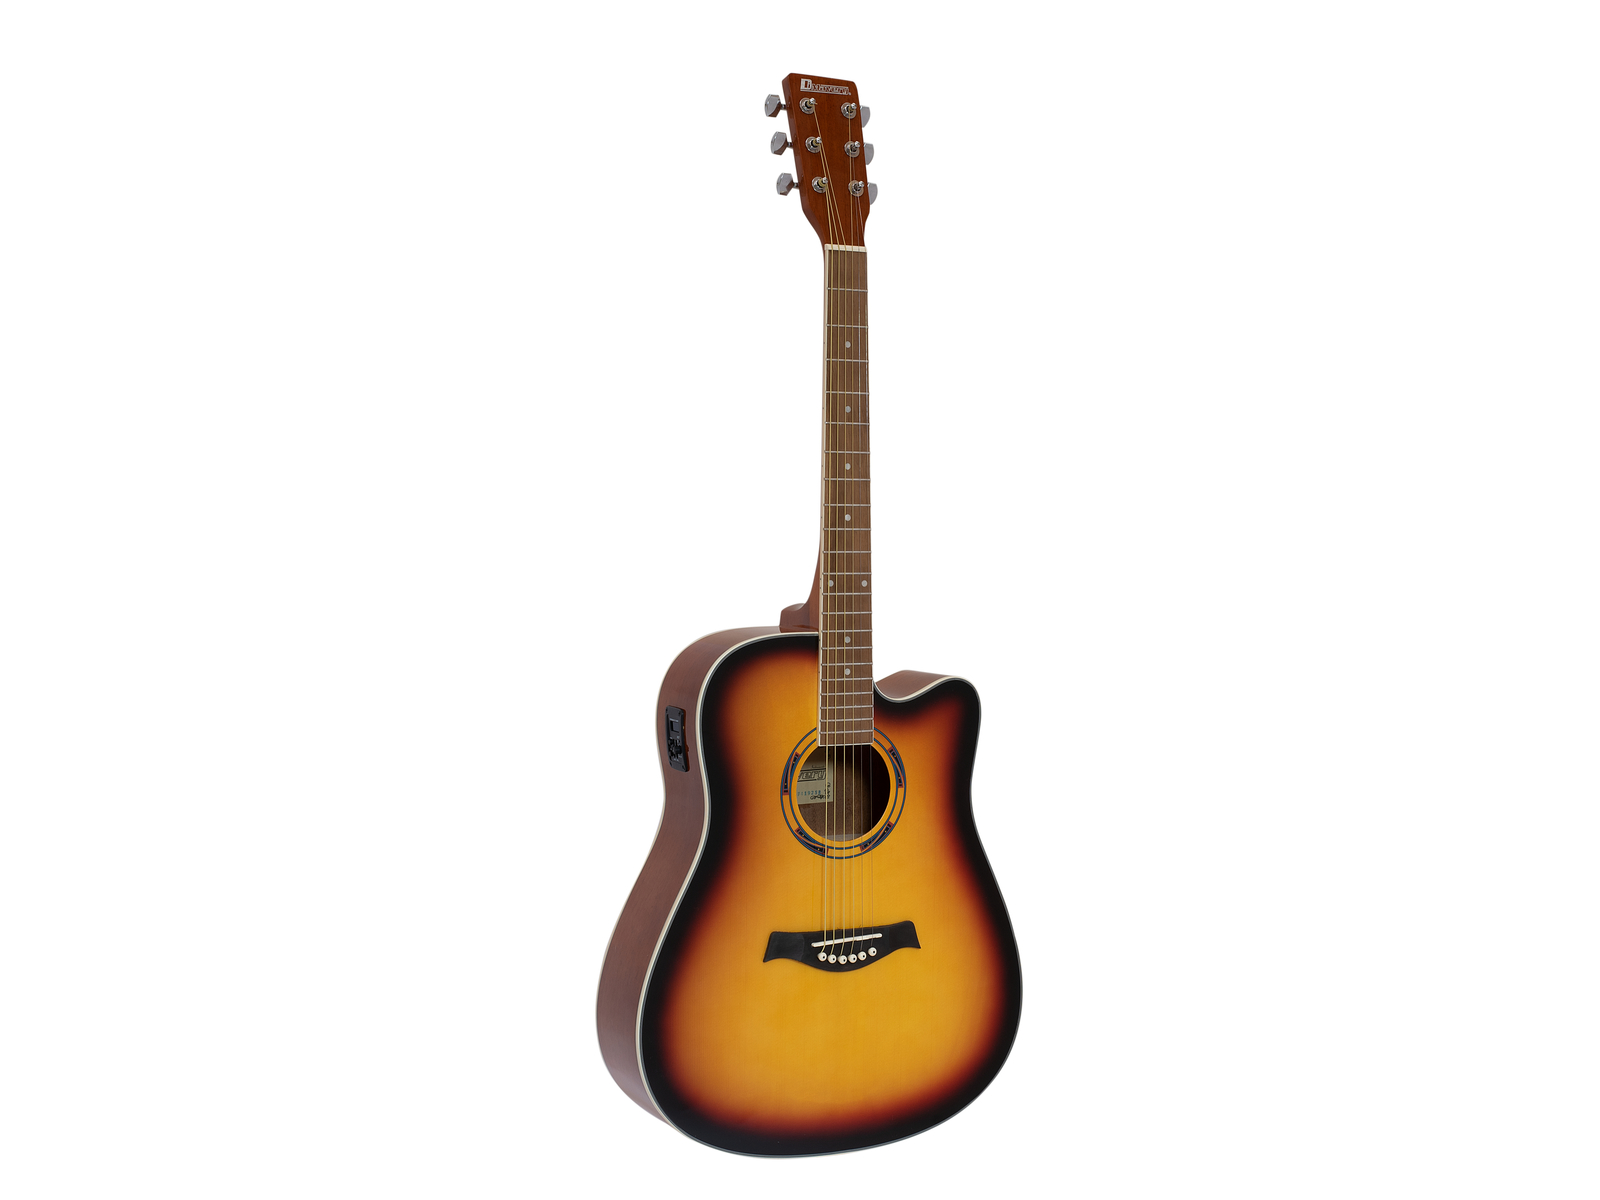 DIMAVERY DR-520 Dreadnought, sunburst